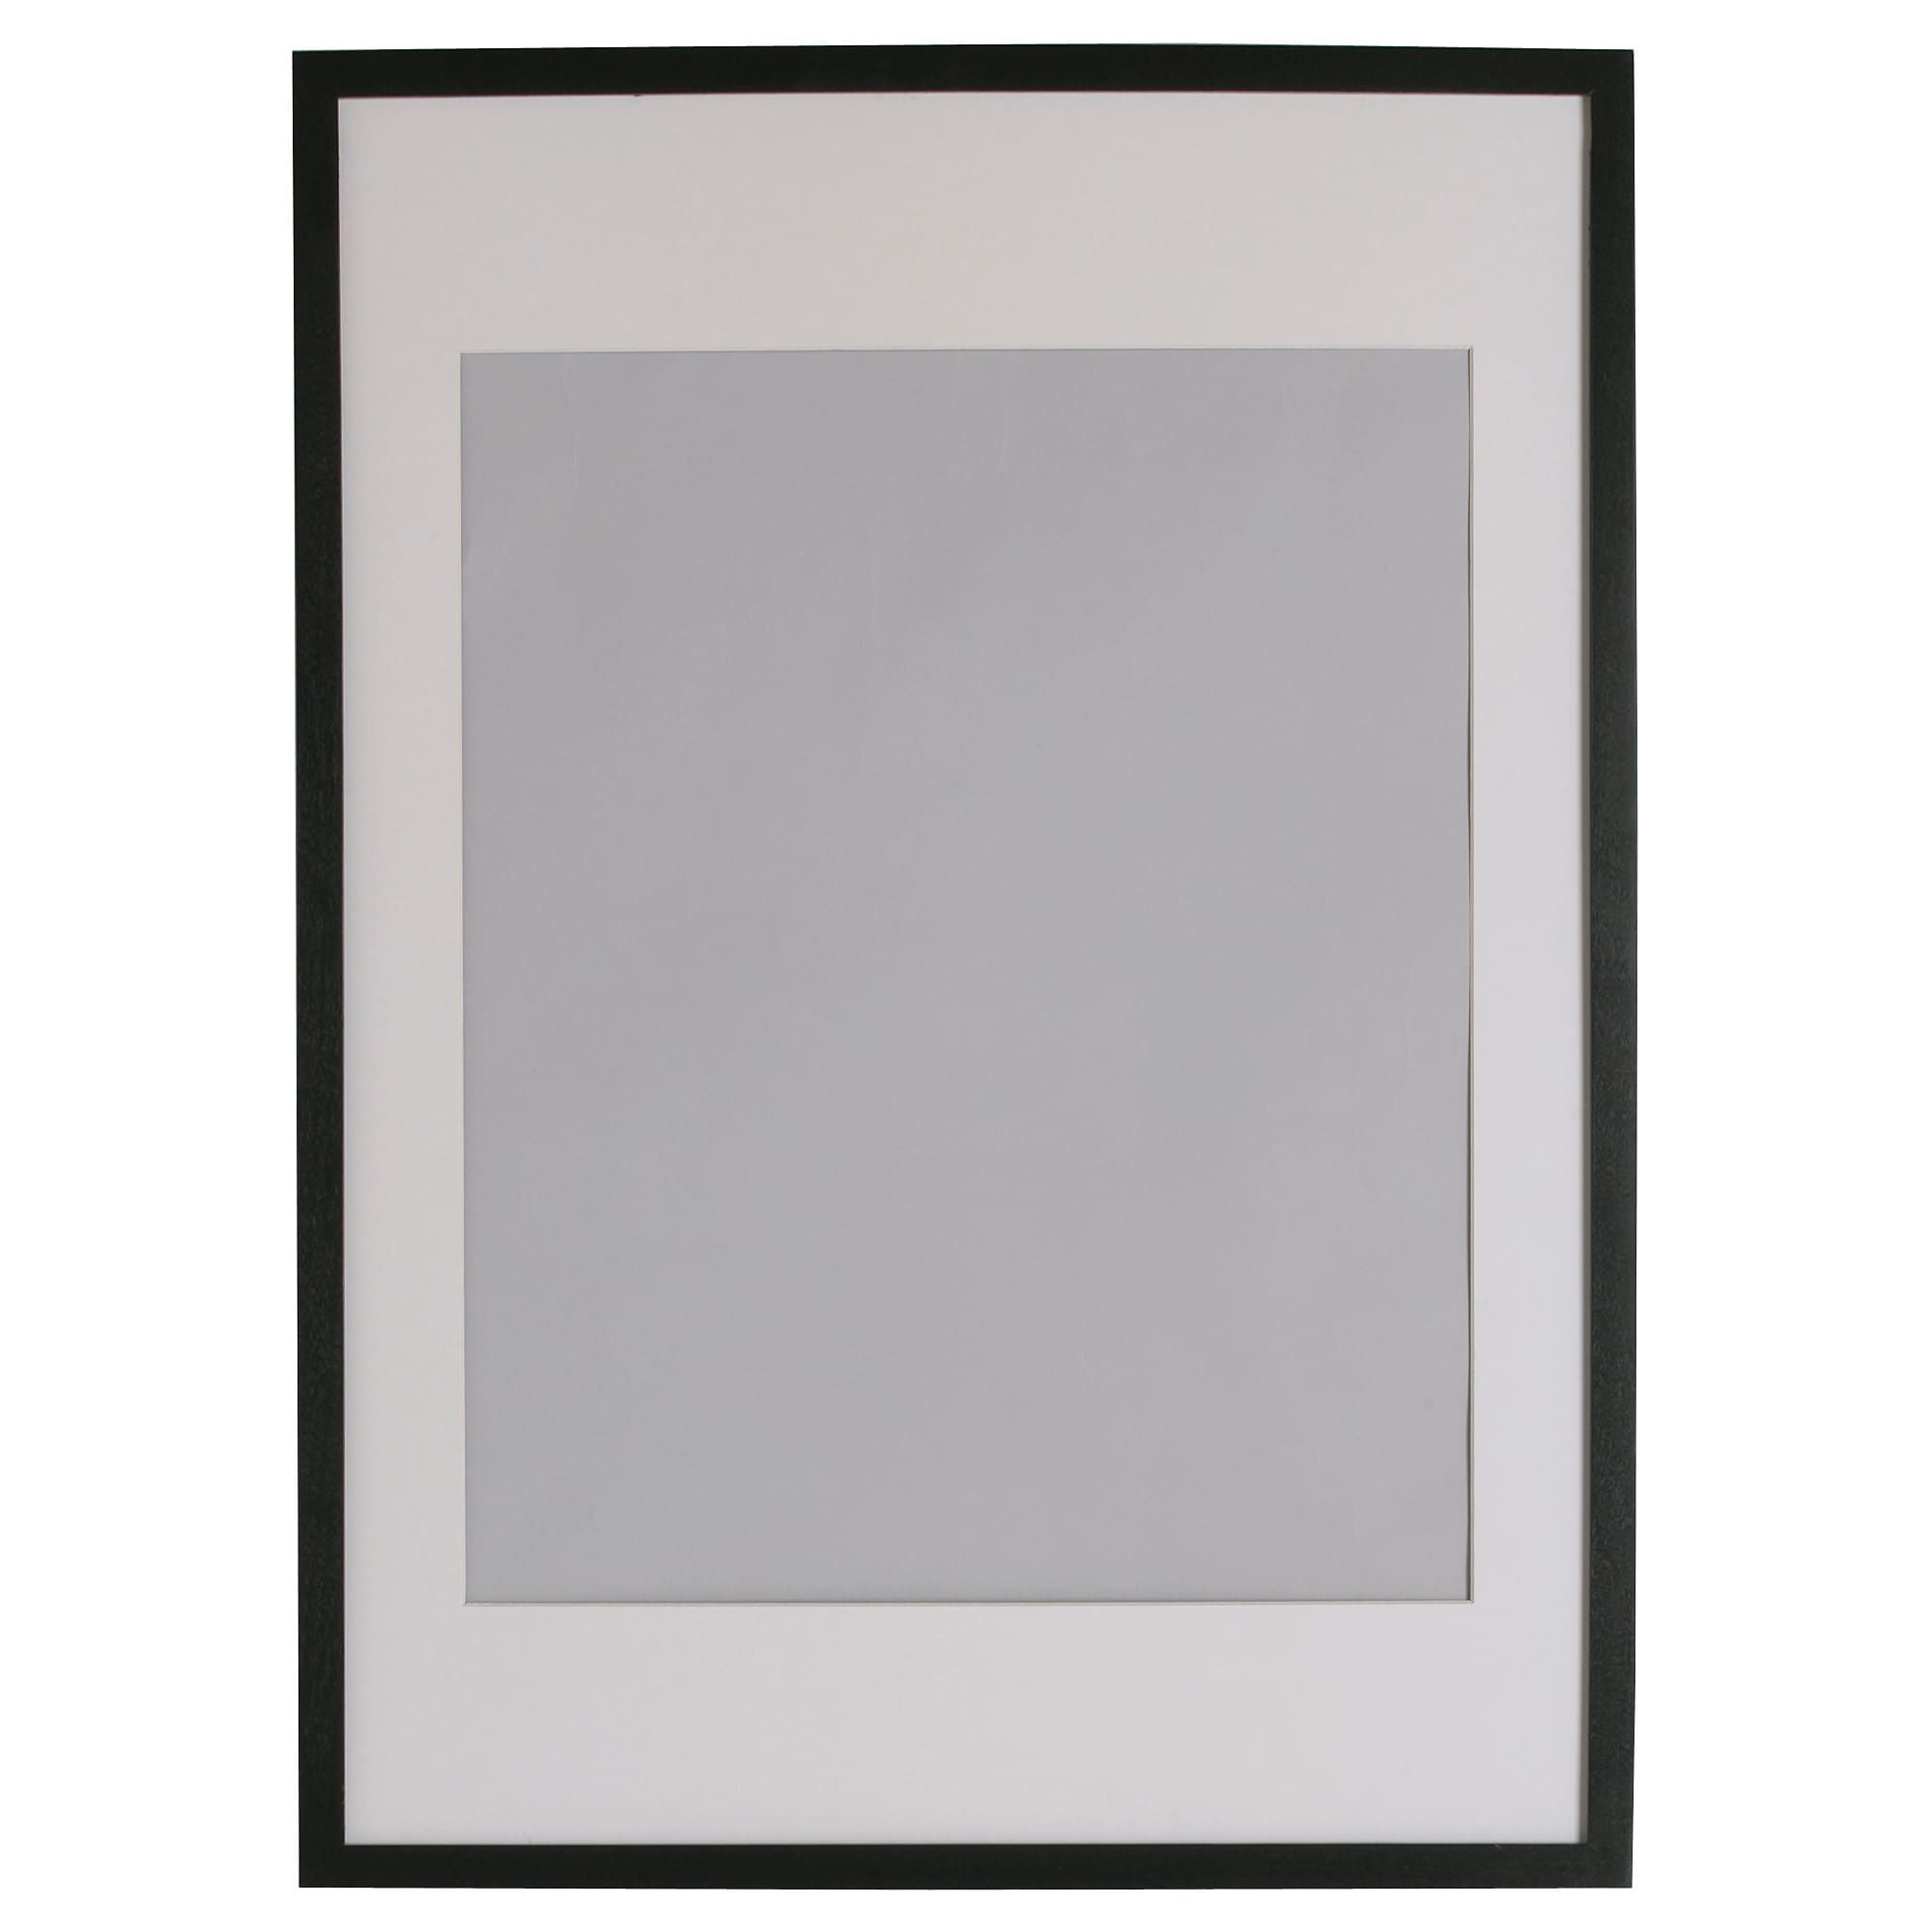 Ribba Frame Black 24x35 Ribba Frame Bathroom Picture Frames Picture Frame Wall